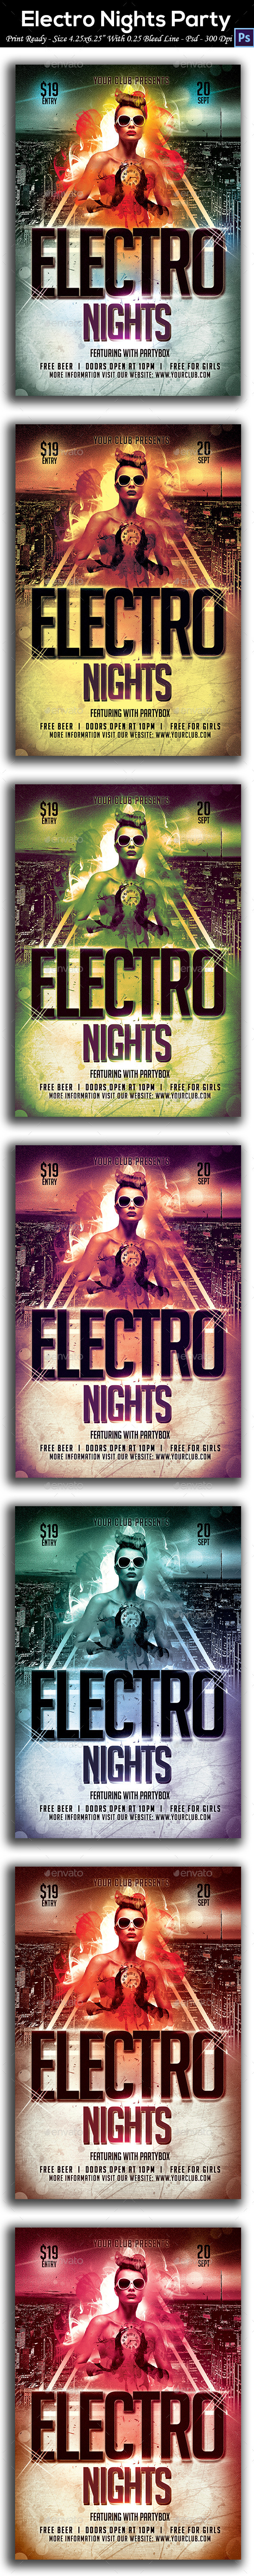 Electro Nights Party Flyer - Clubs & Parties Events